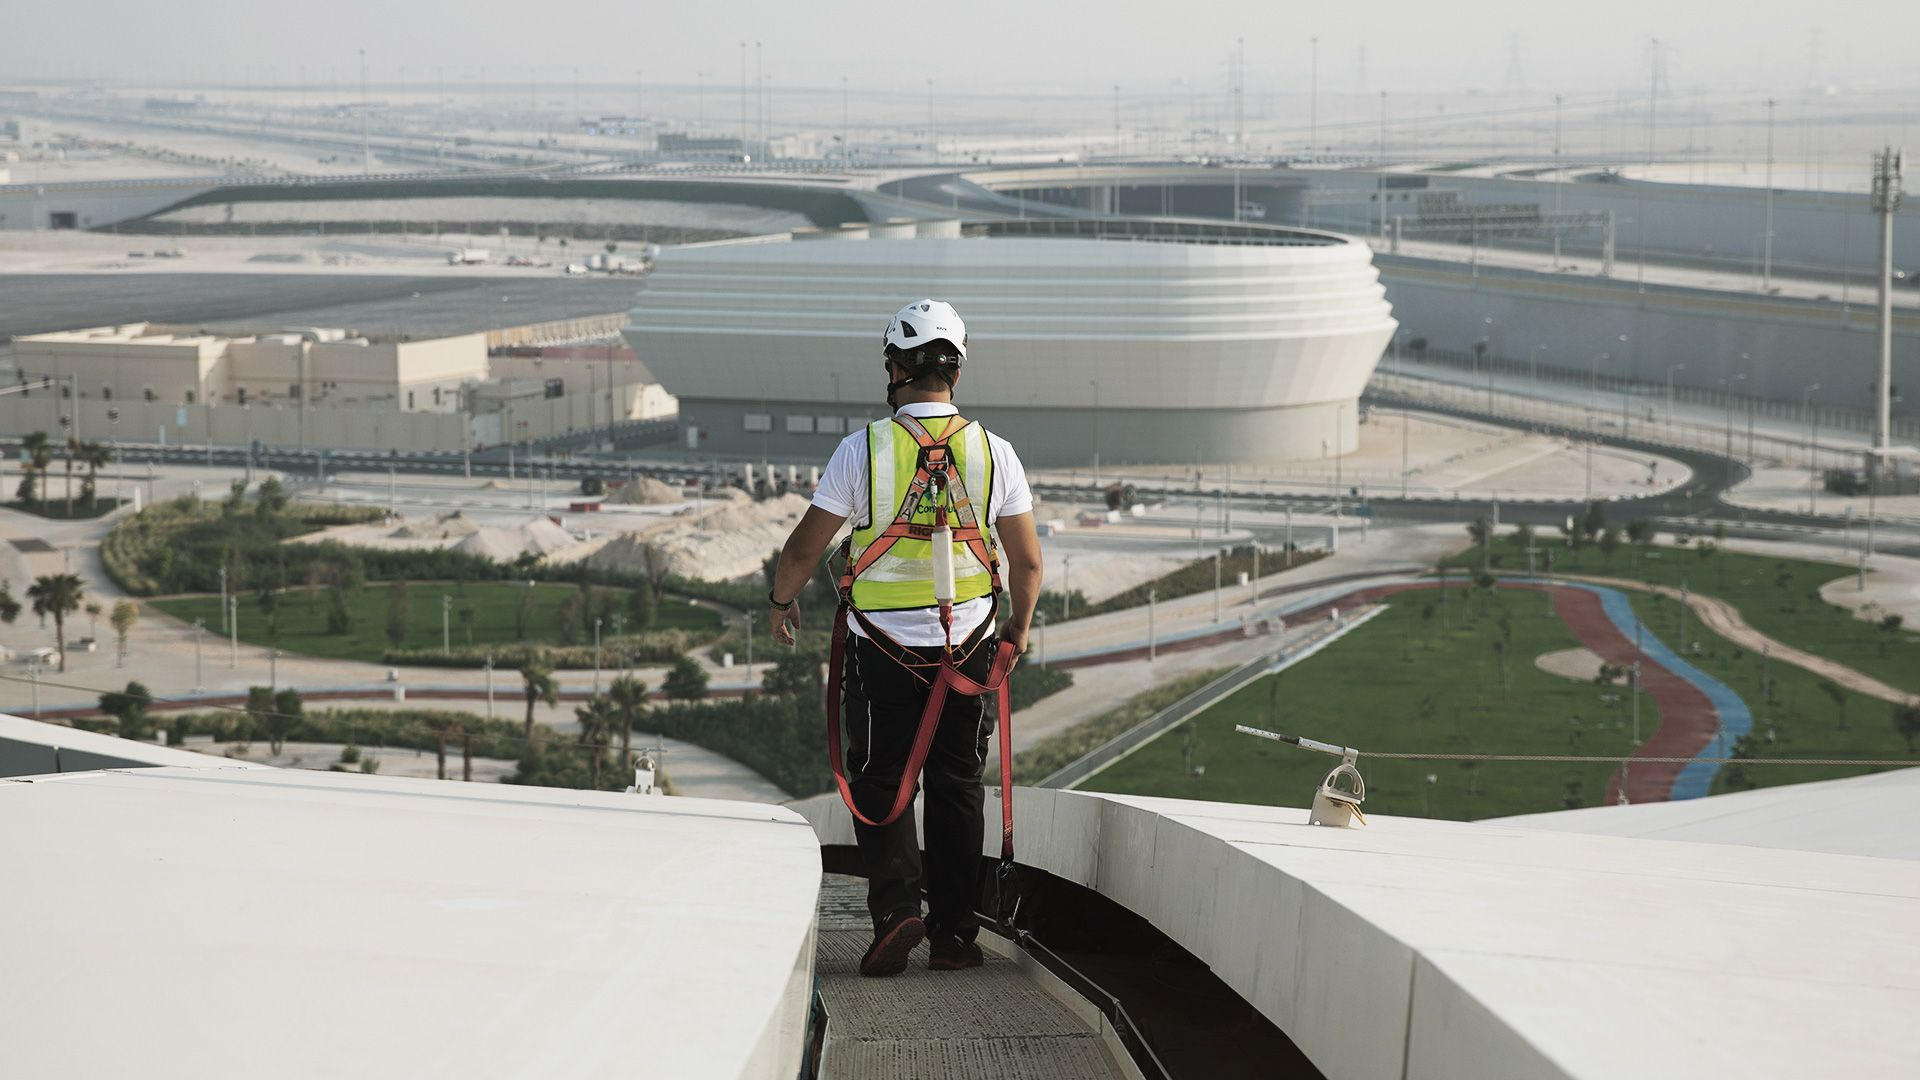 Set of safety equipments on an architectural stadium in Qatar